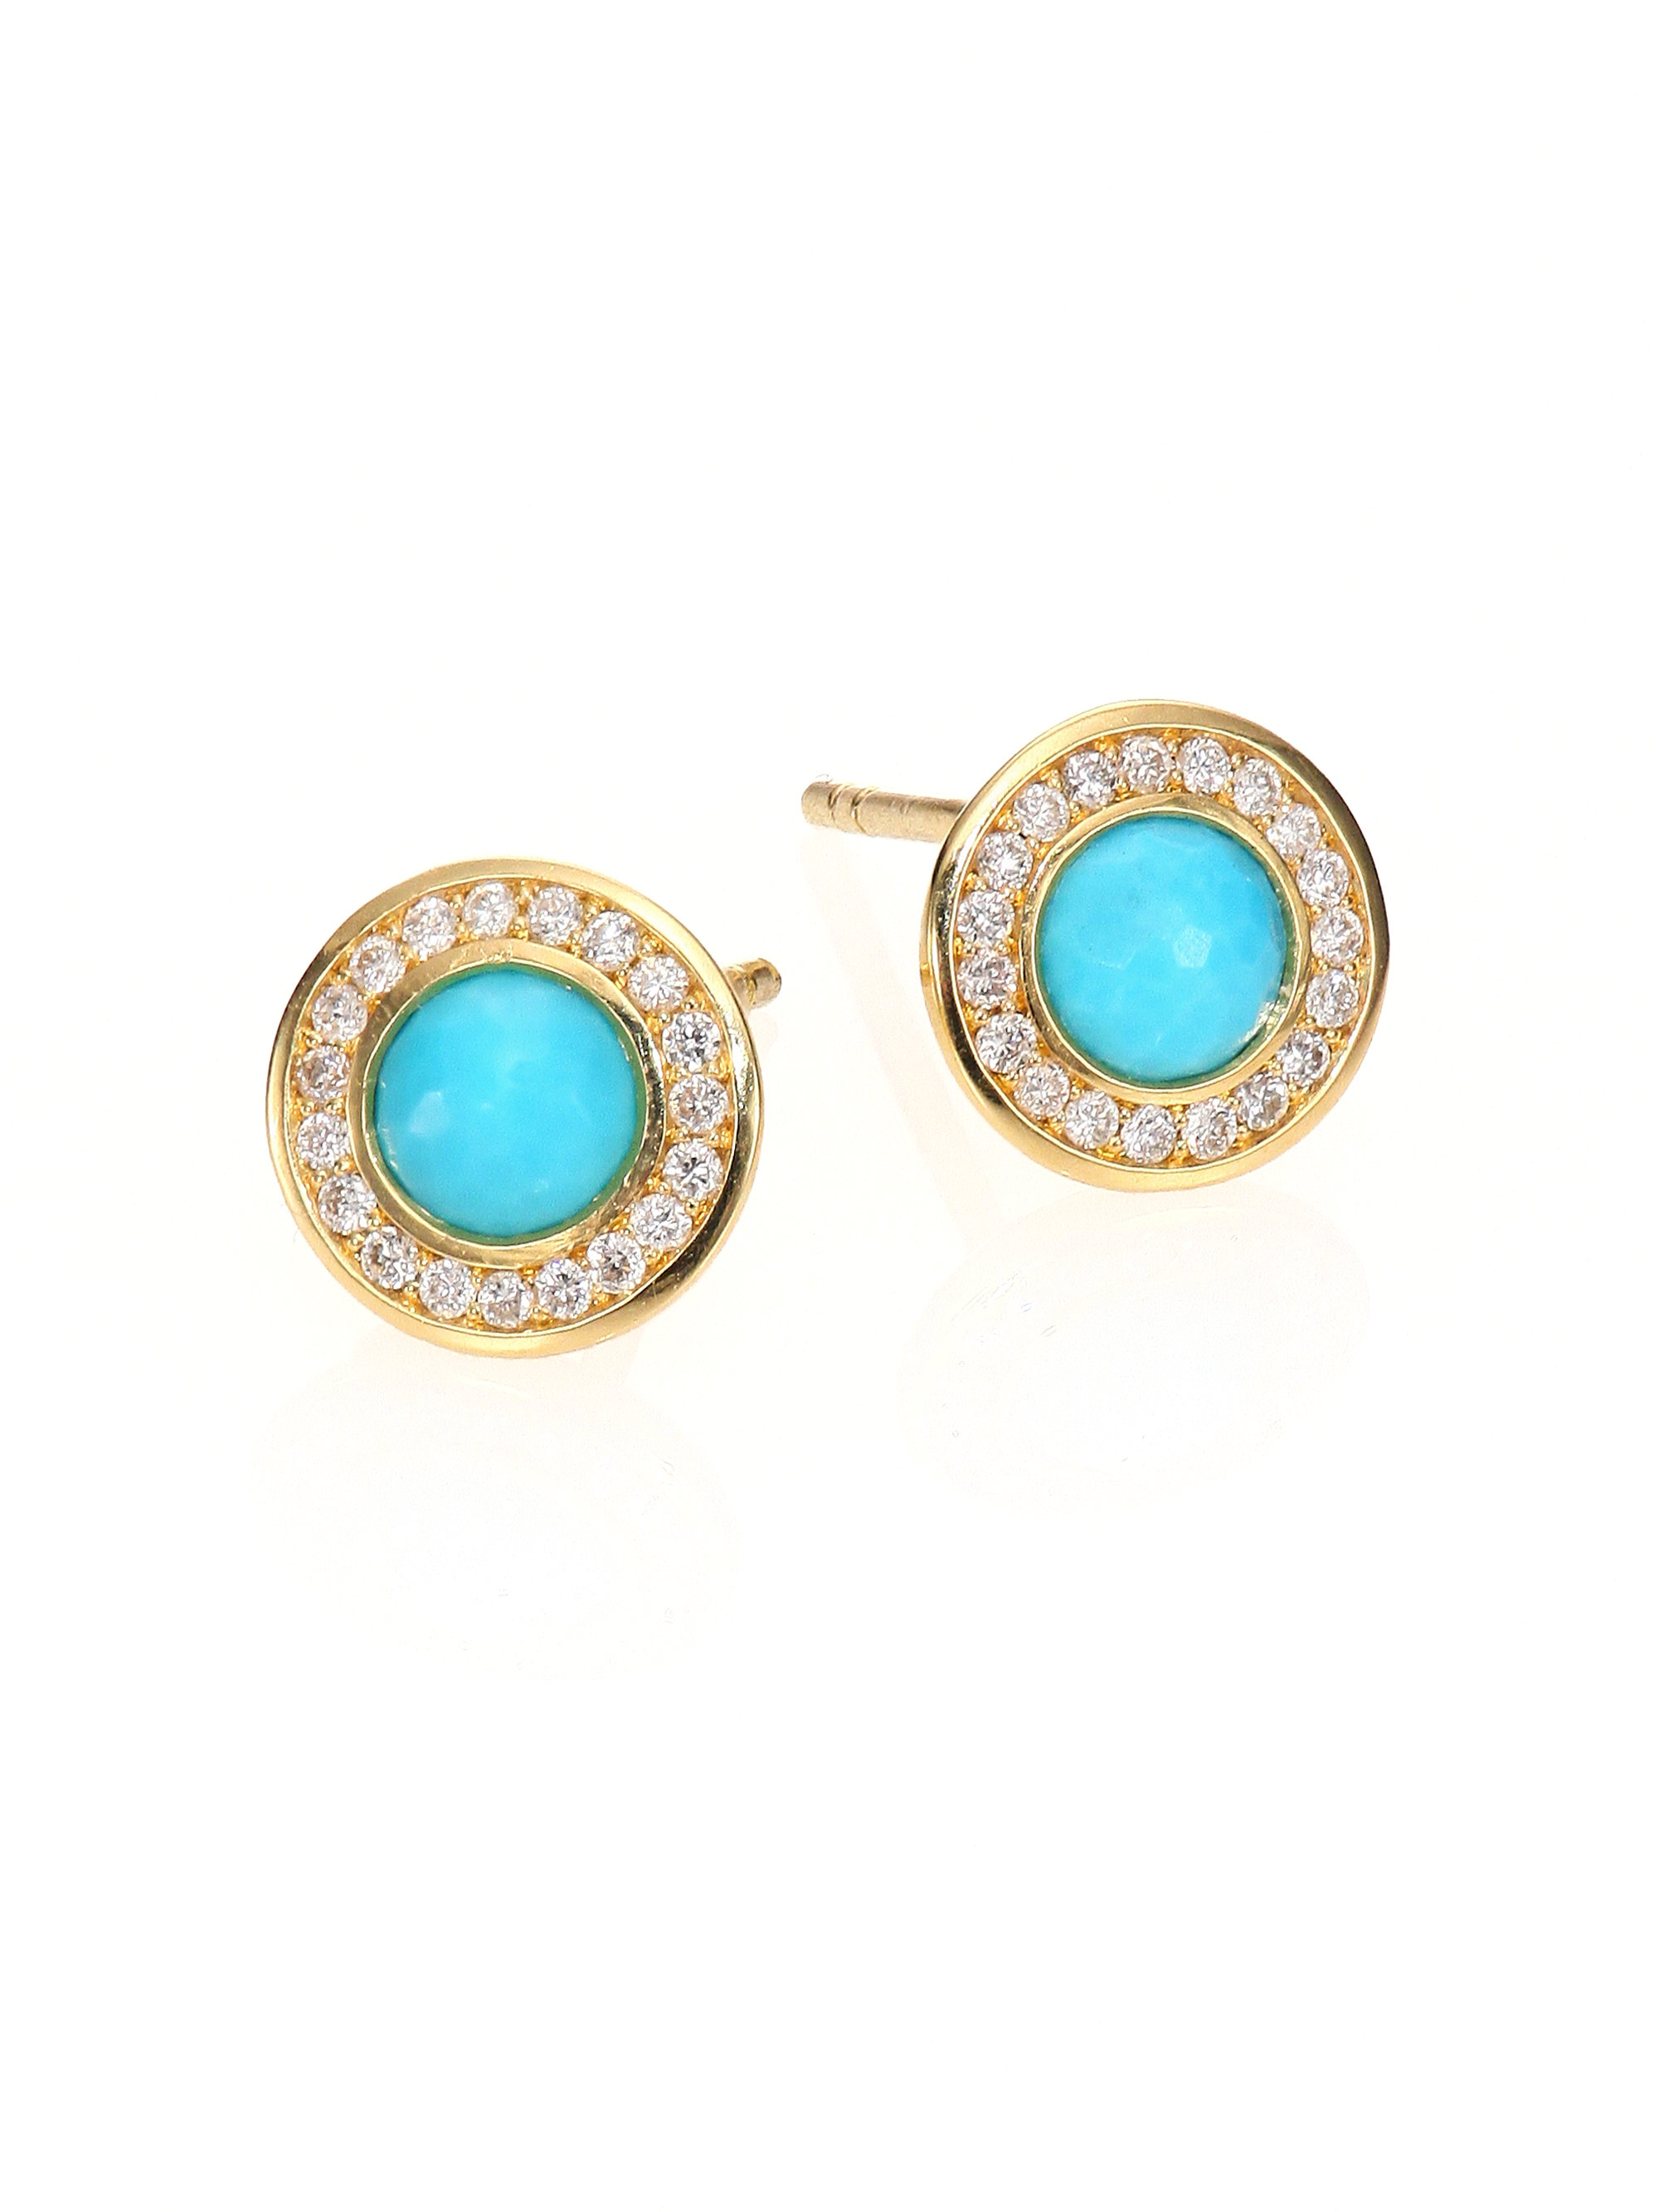 druzy turquoise brooks products dsc design opal earrings justine stud